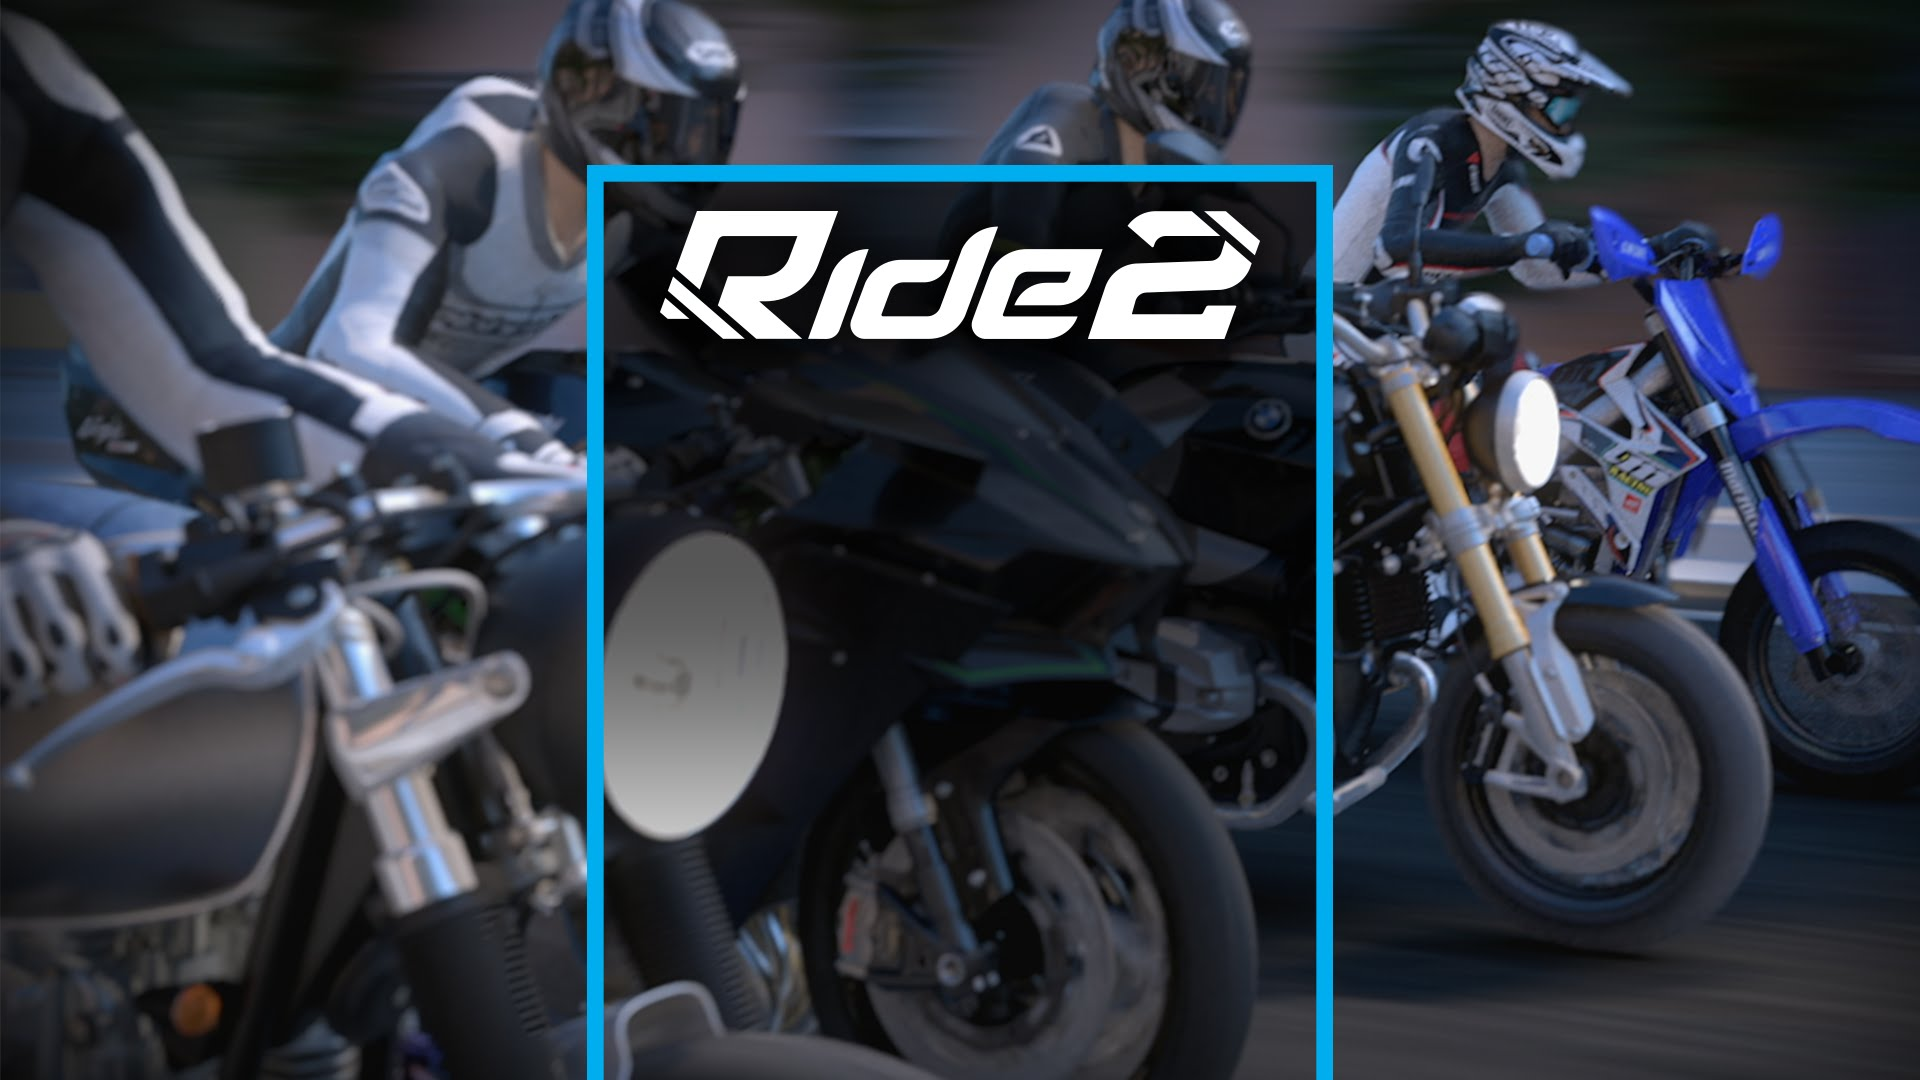 RIDE 2 telecharger gratuit de PC et Torrent